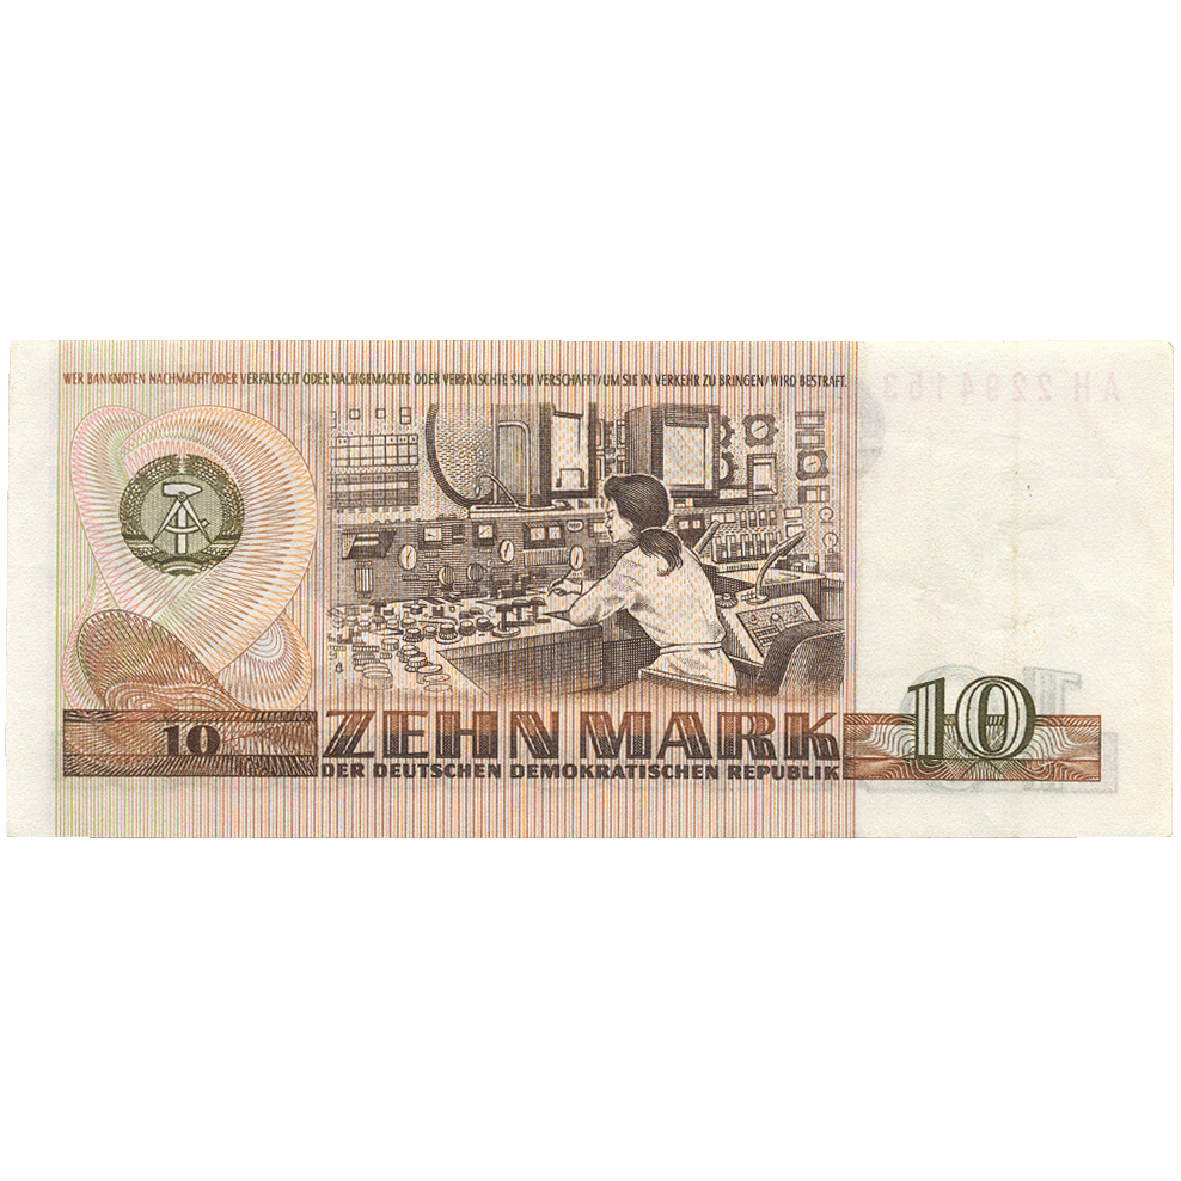 German Democratic Republic, 10 Mark 1971 (reverse)